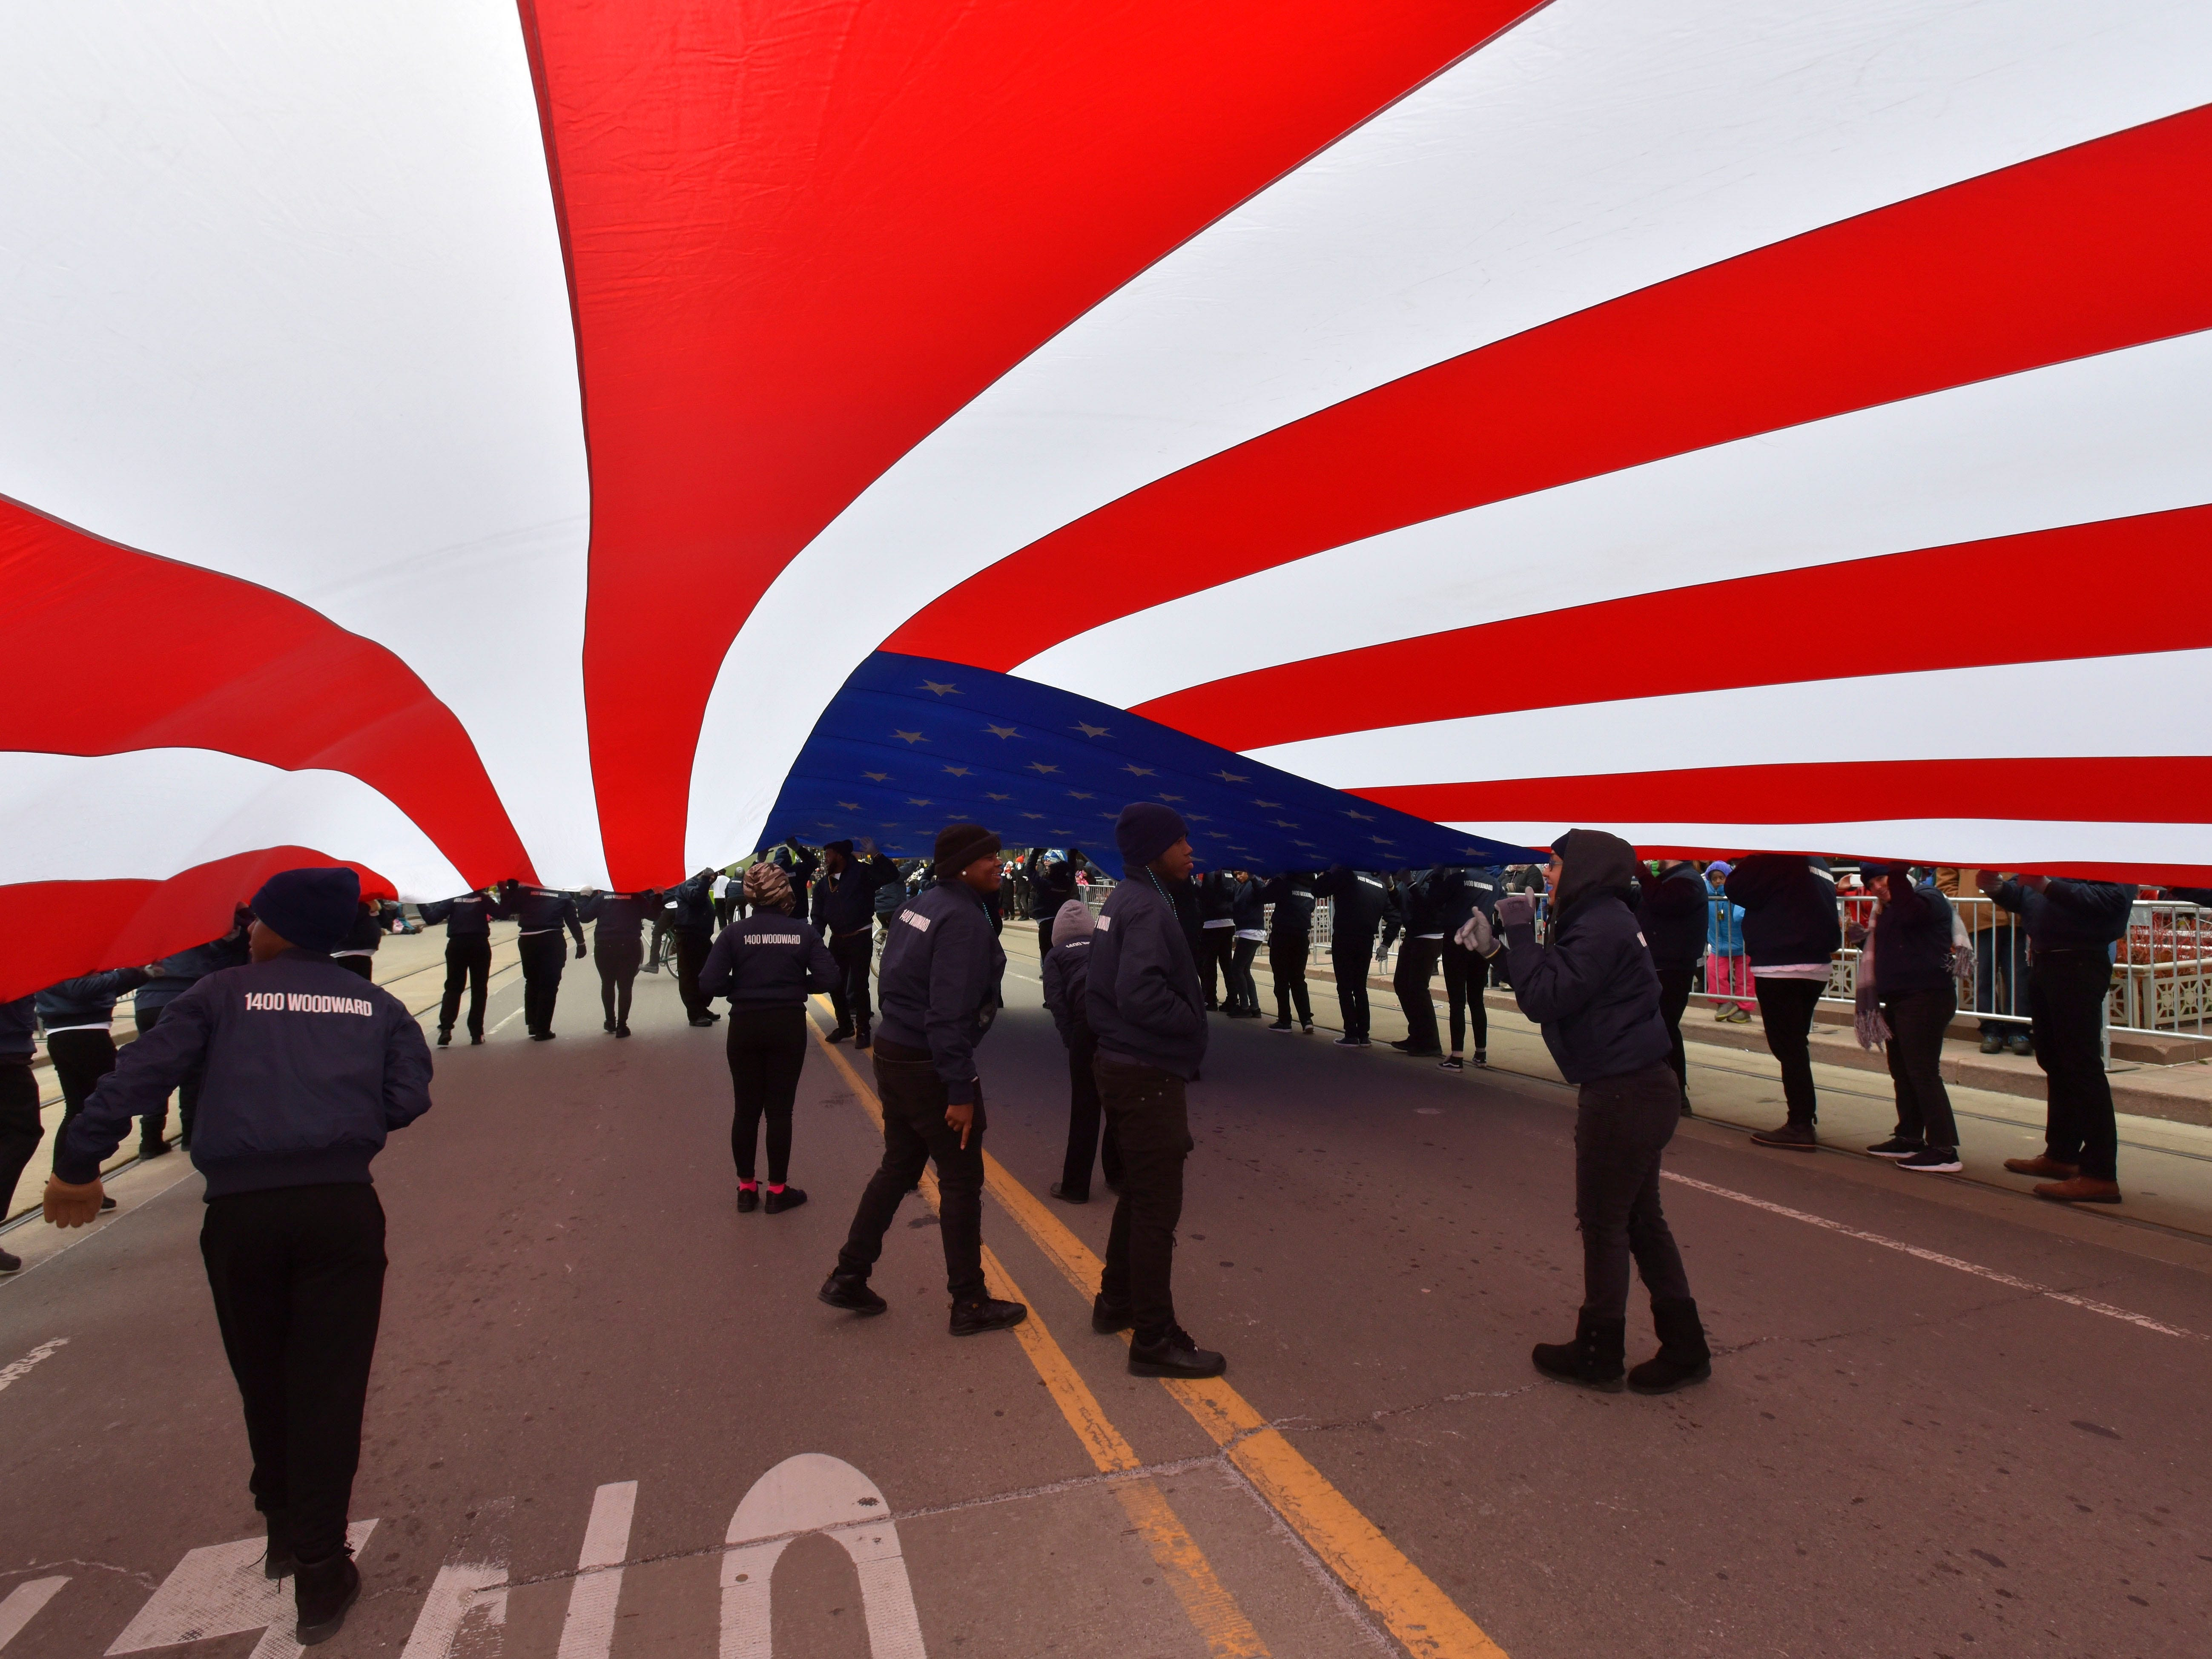 People walk under the U.S. flag from Shinola Detroit.